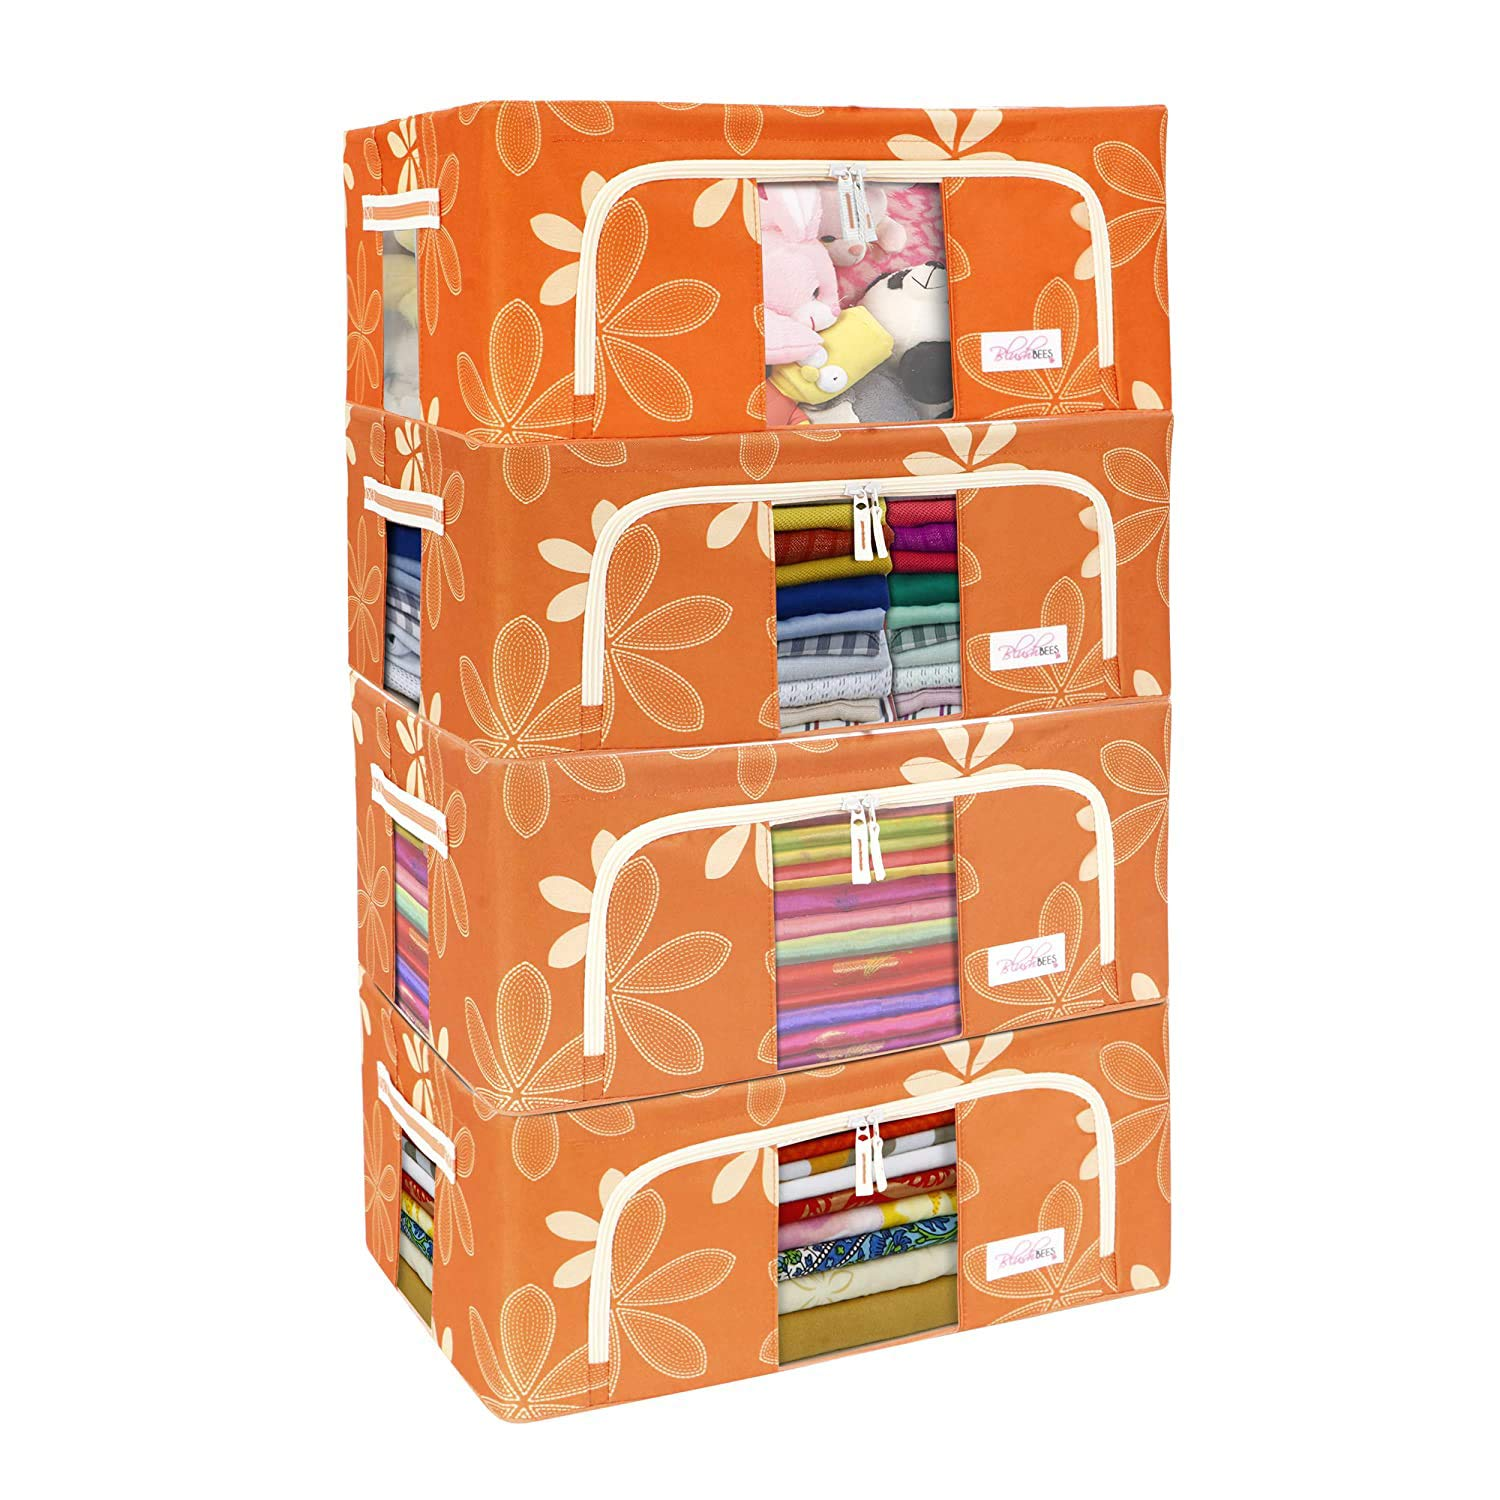 BlushBees Living Box - Foldable Storage Boxes for Clothes, Saree Cover Bags - 44 Litre, Pack of 4, Orange